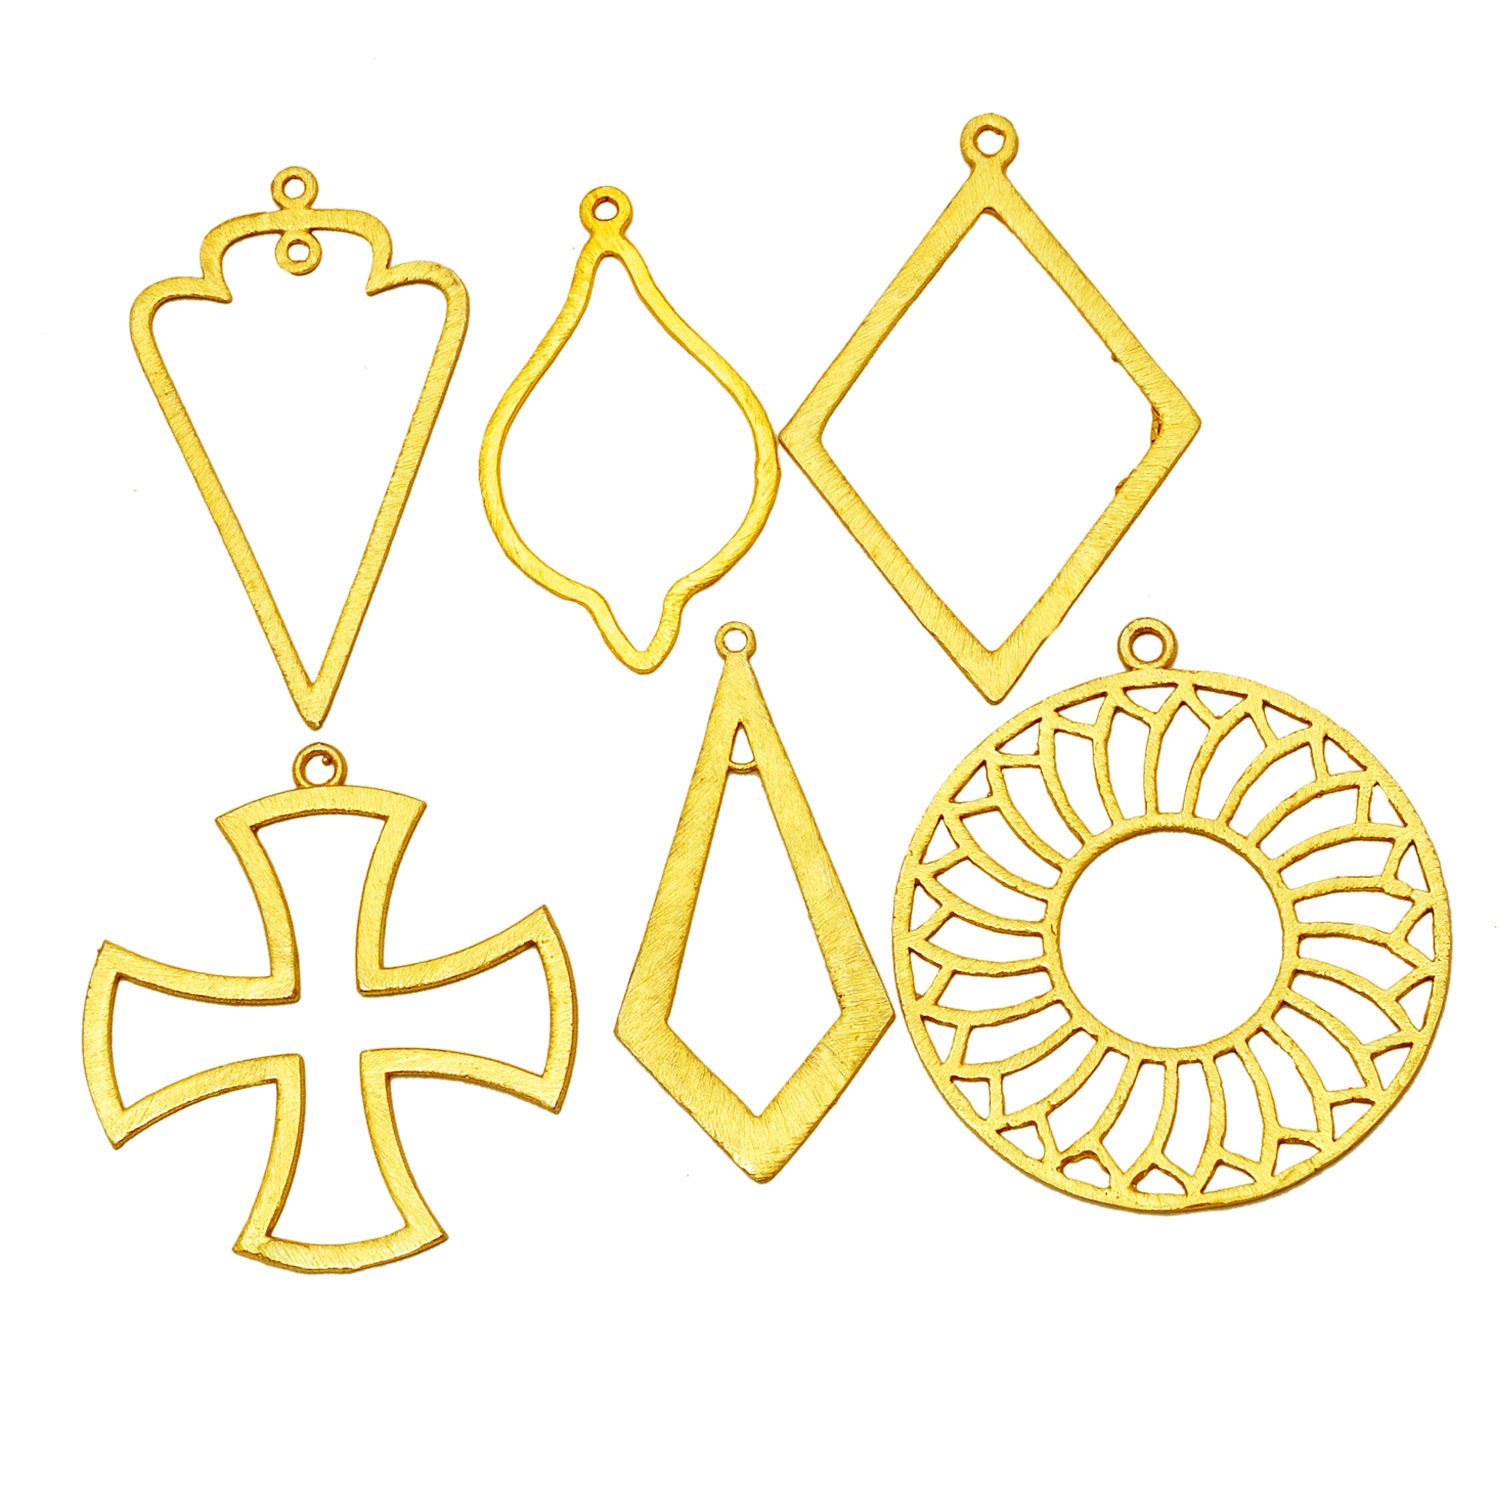 Brushed Gold Plated Cross Shape Metal Charms Pendant - Jewelry Findings Charms